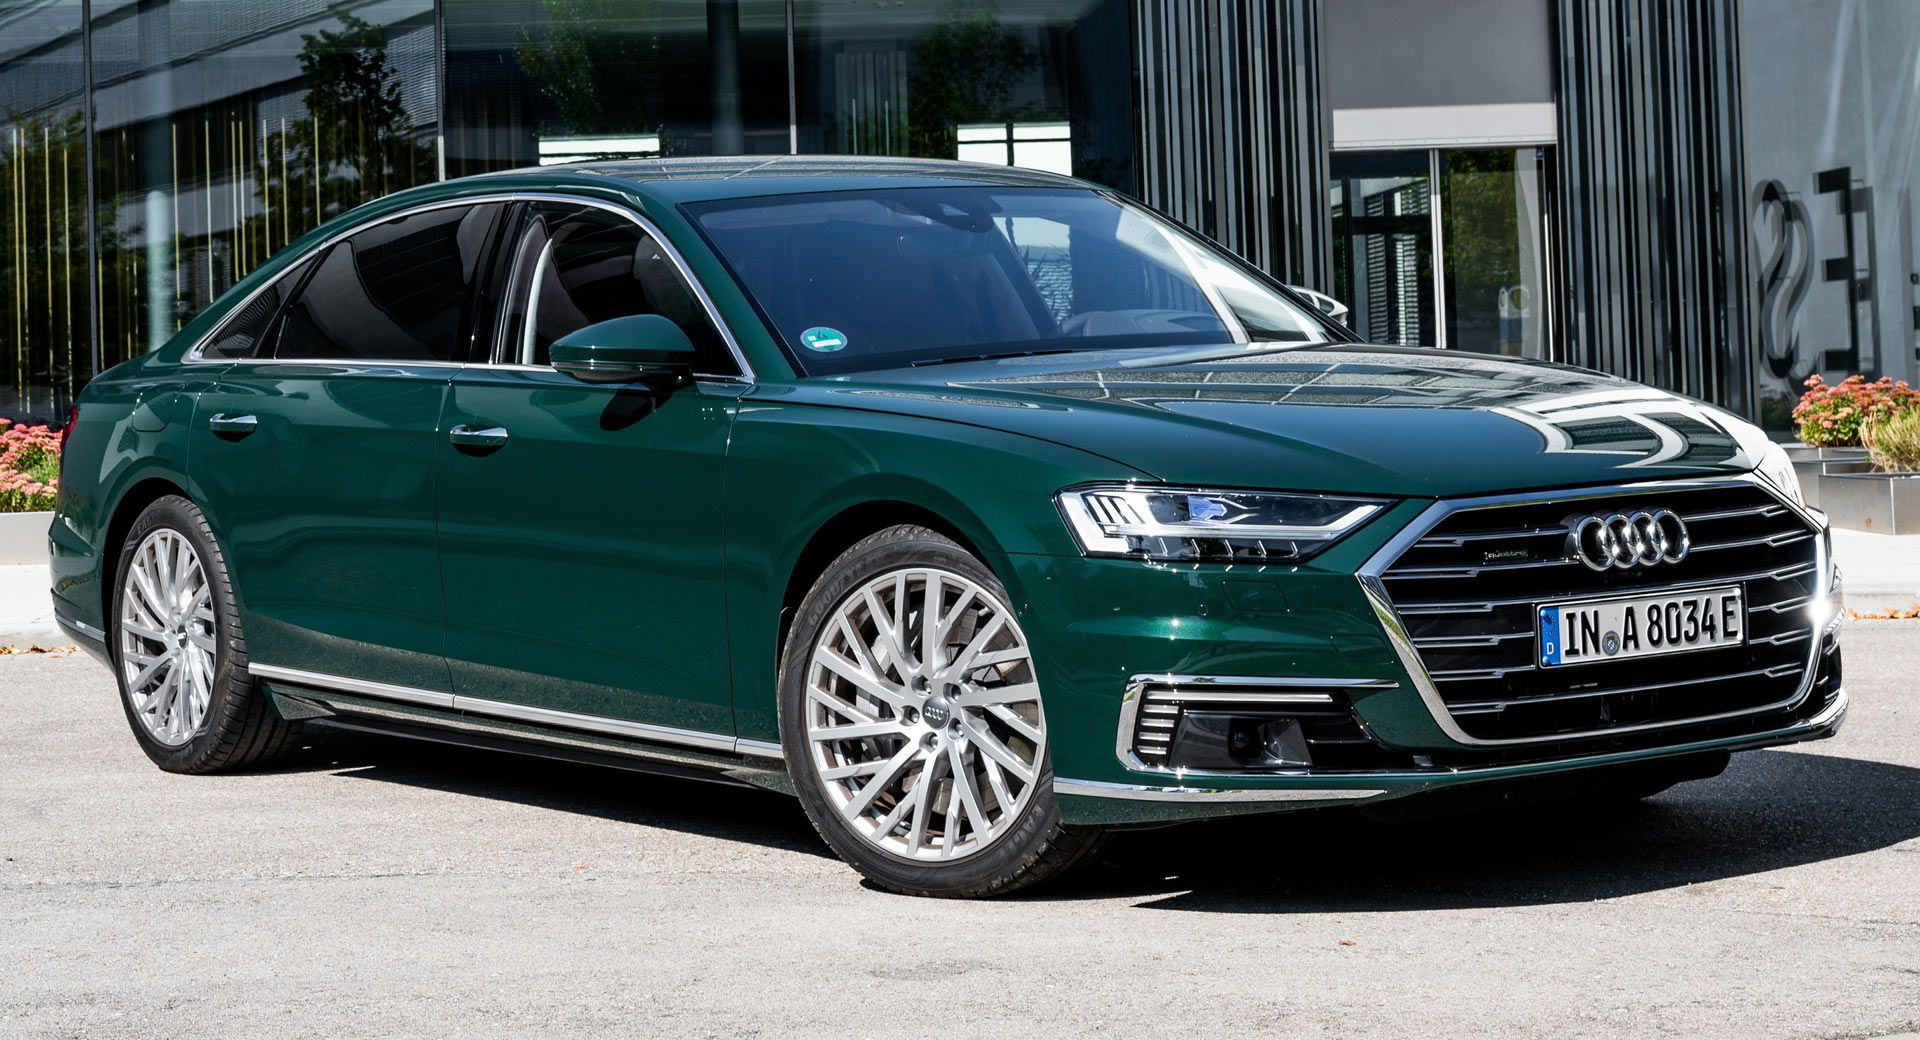 The 2020 Audi A8 Tfsi E Phev Is A Wise Choice Over The Base A8 If You Qualify For Credits Audi Audia8 Phev Prices Cars Carsof In 2020 Audi Hybrid Car Audi Hybrid